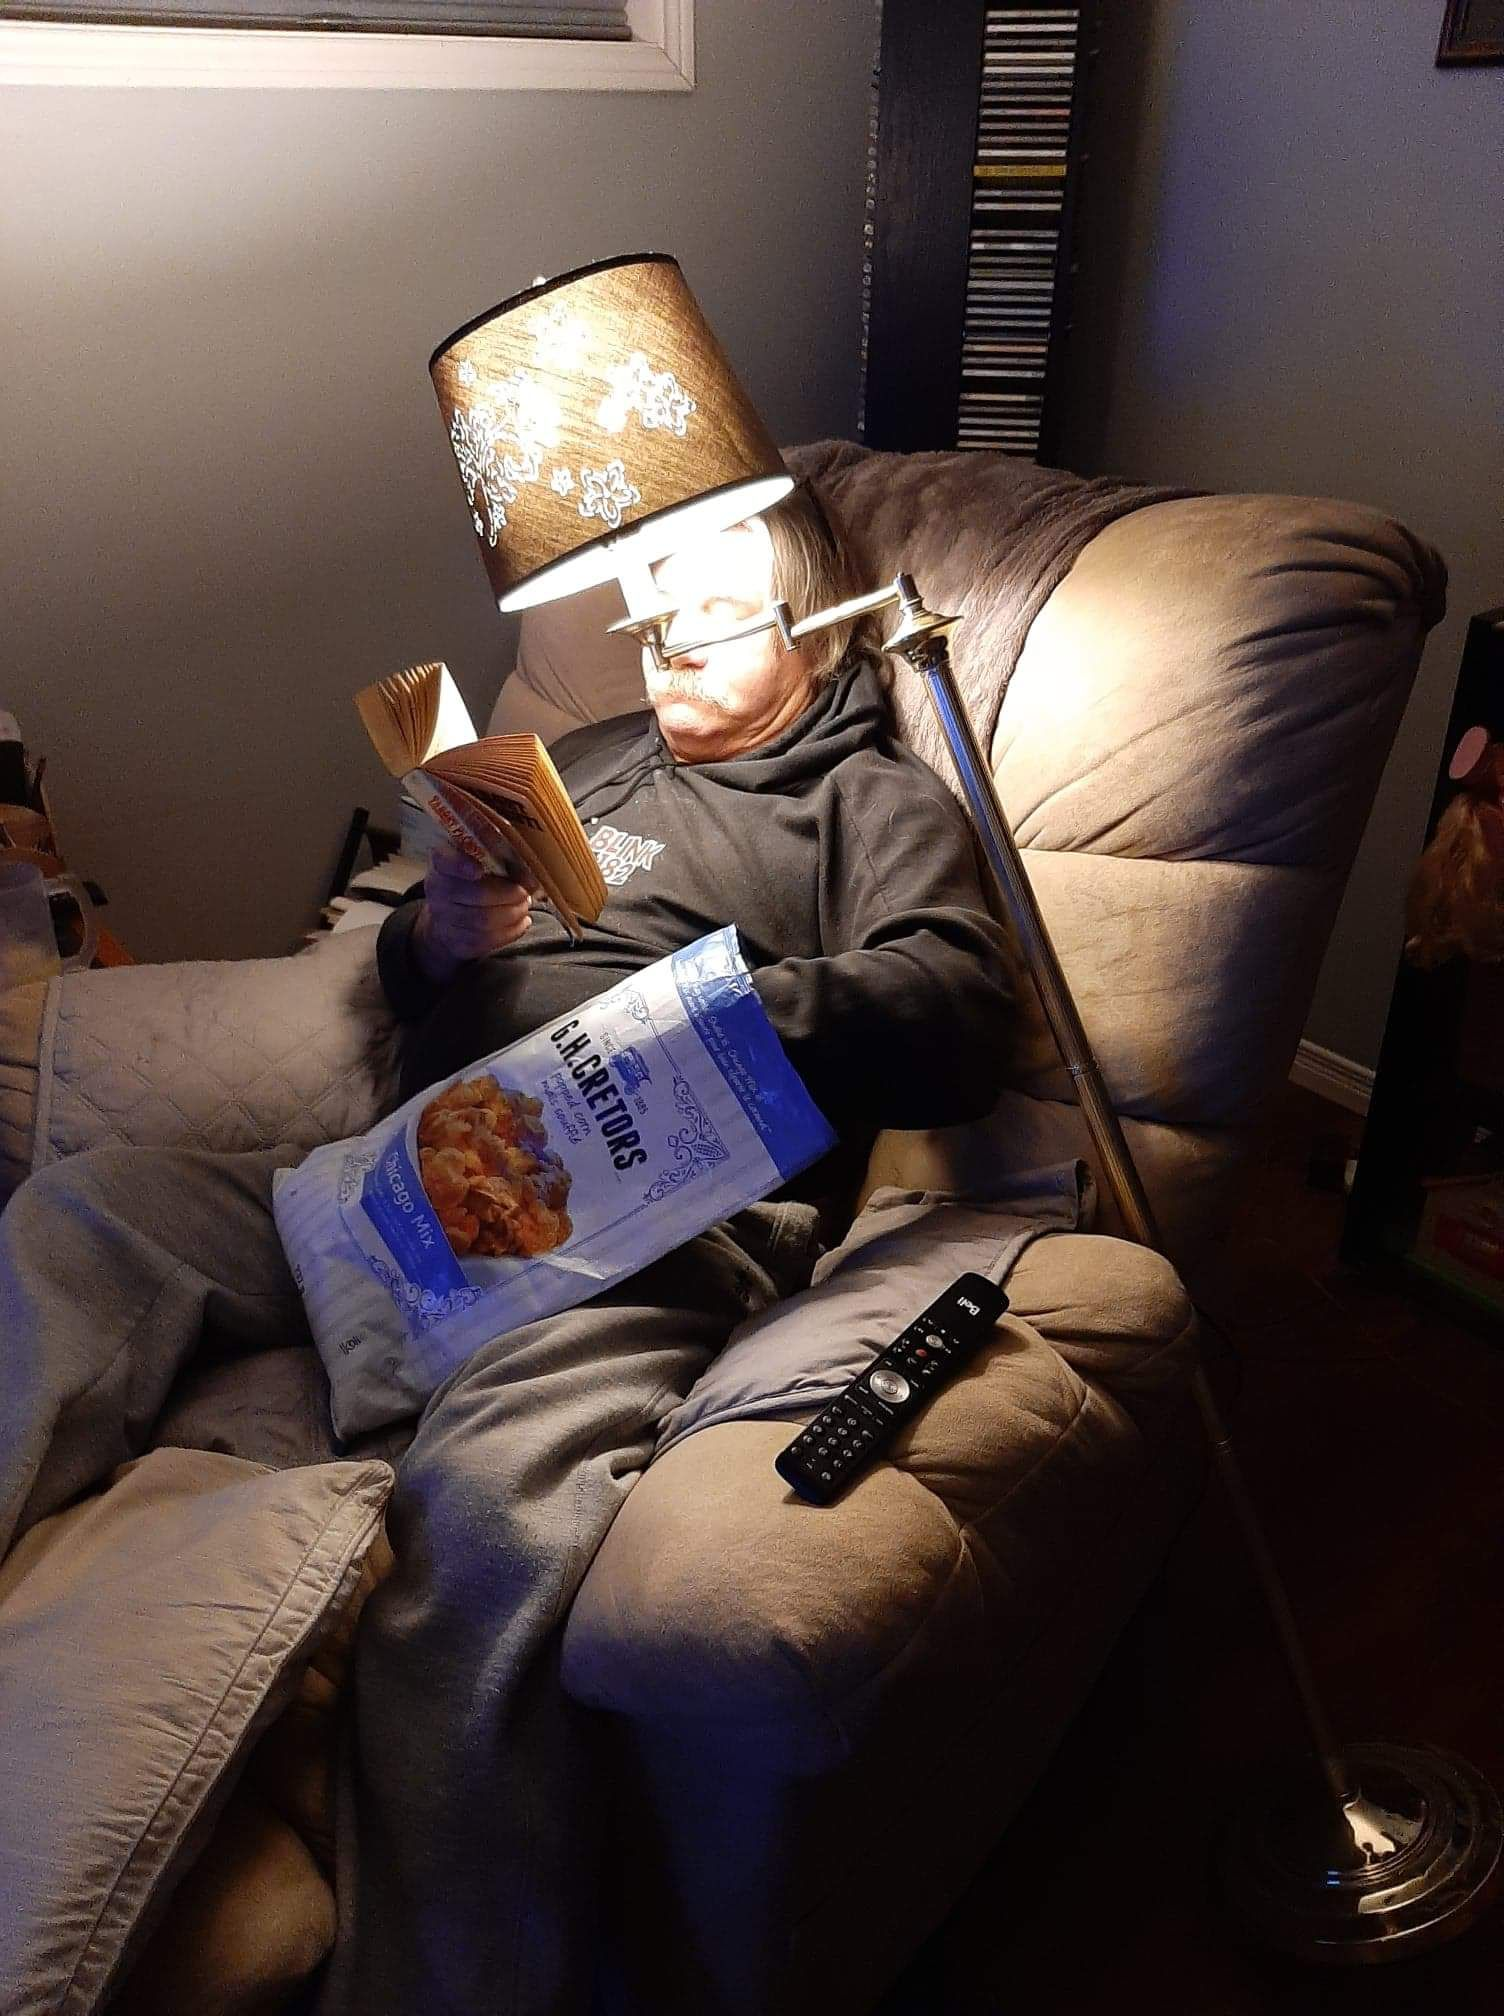 How my dad reads a book